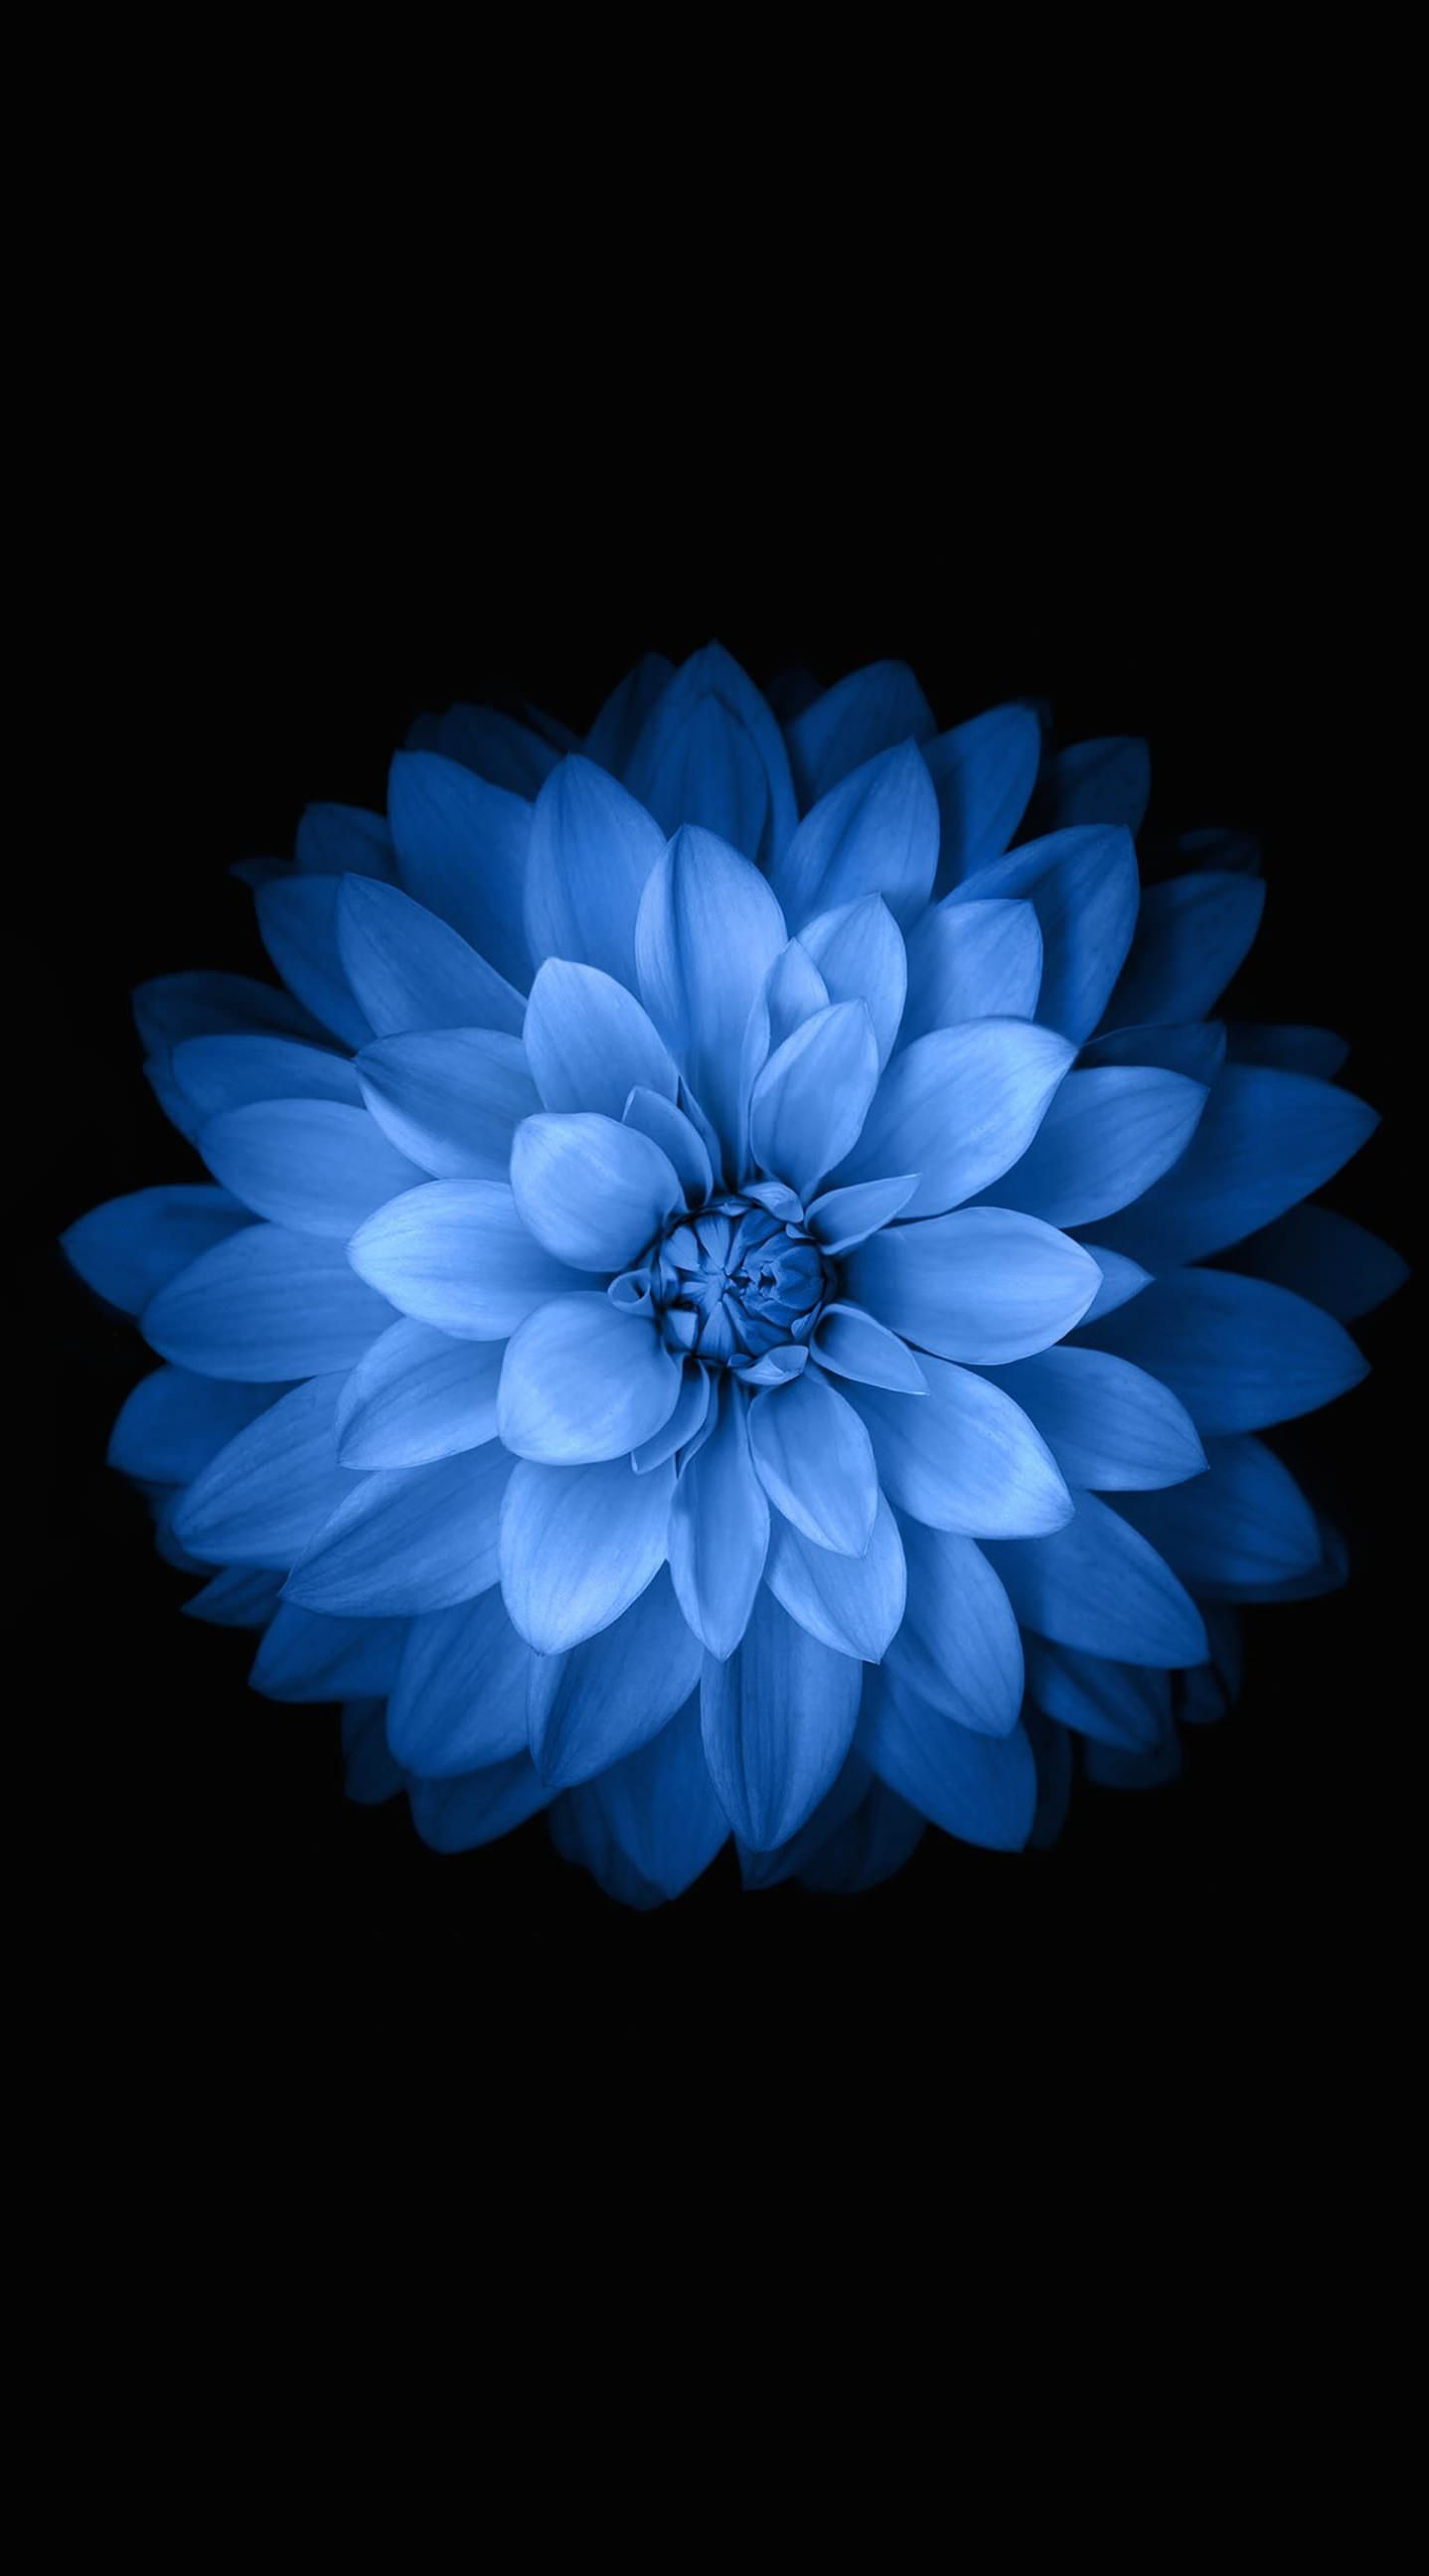 iphone flower wallpaper blue iphone wallpaper images blue wallpaper 1619